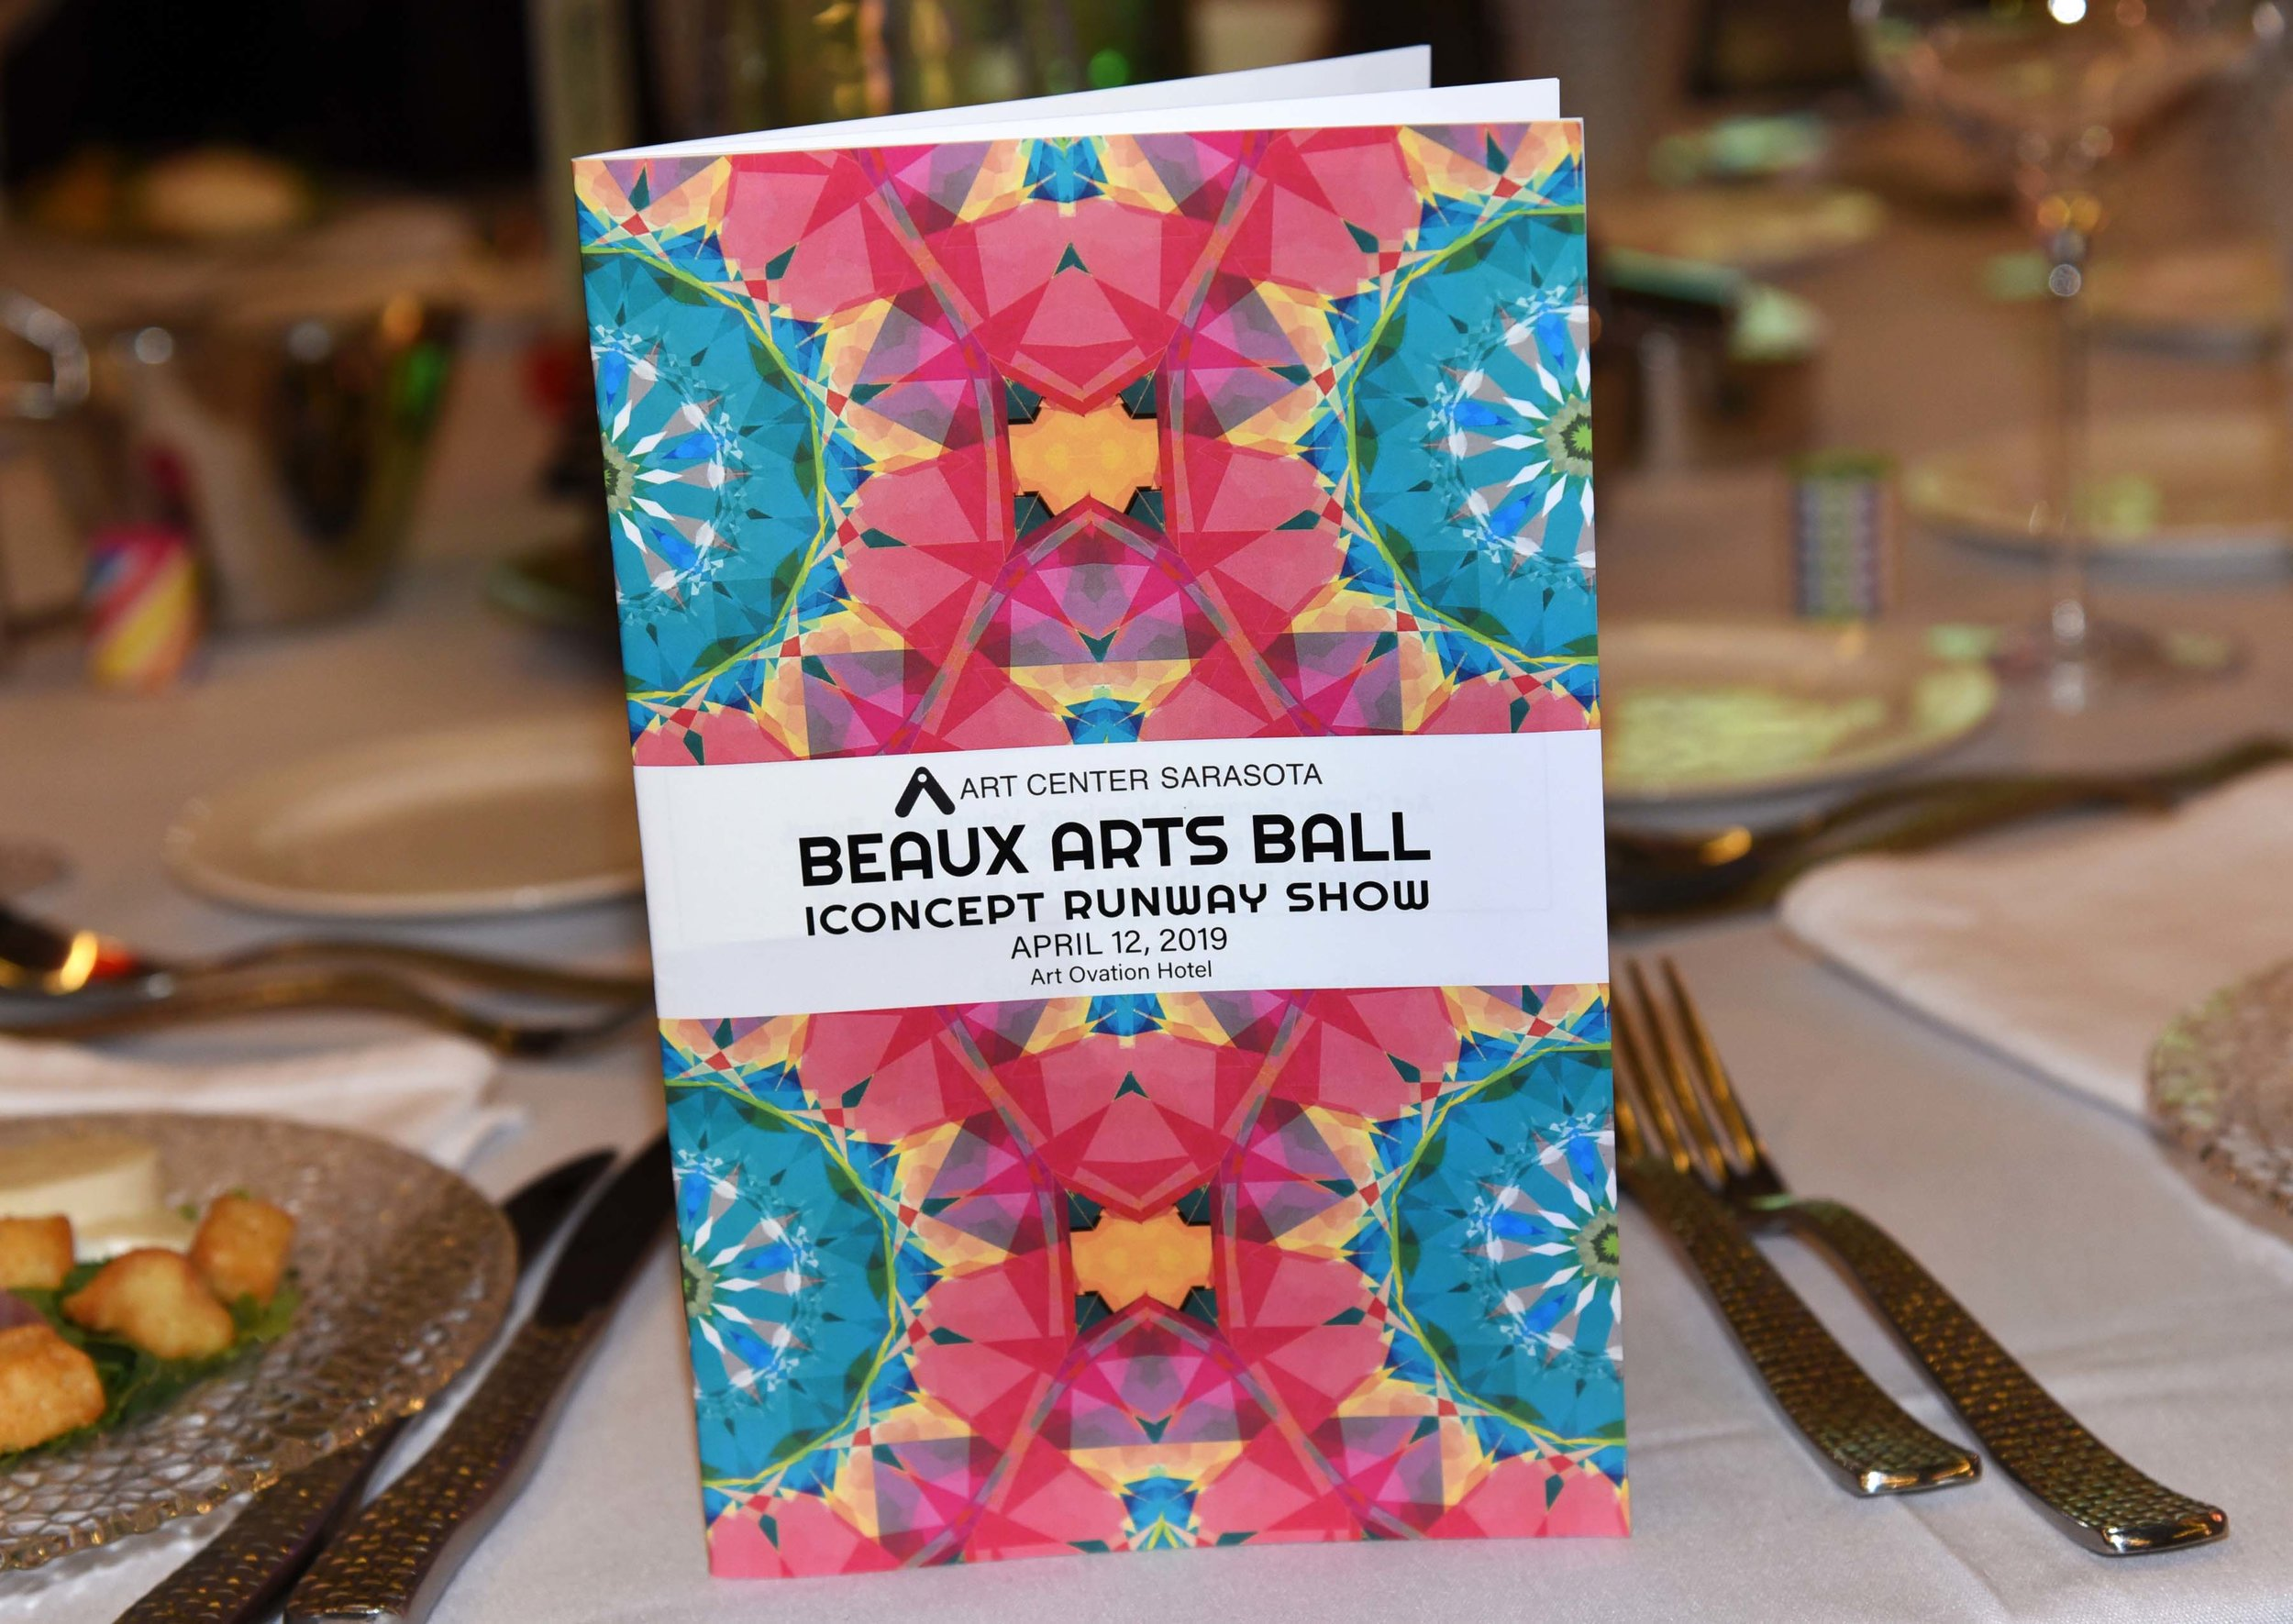 Beaux Arts Ball (328).jpg